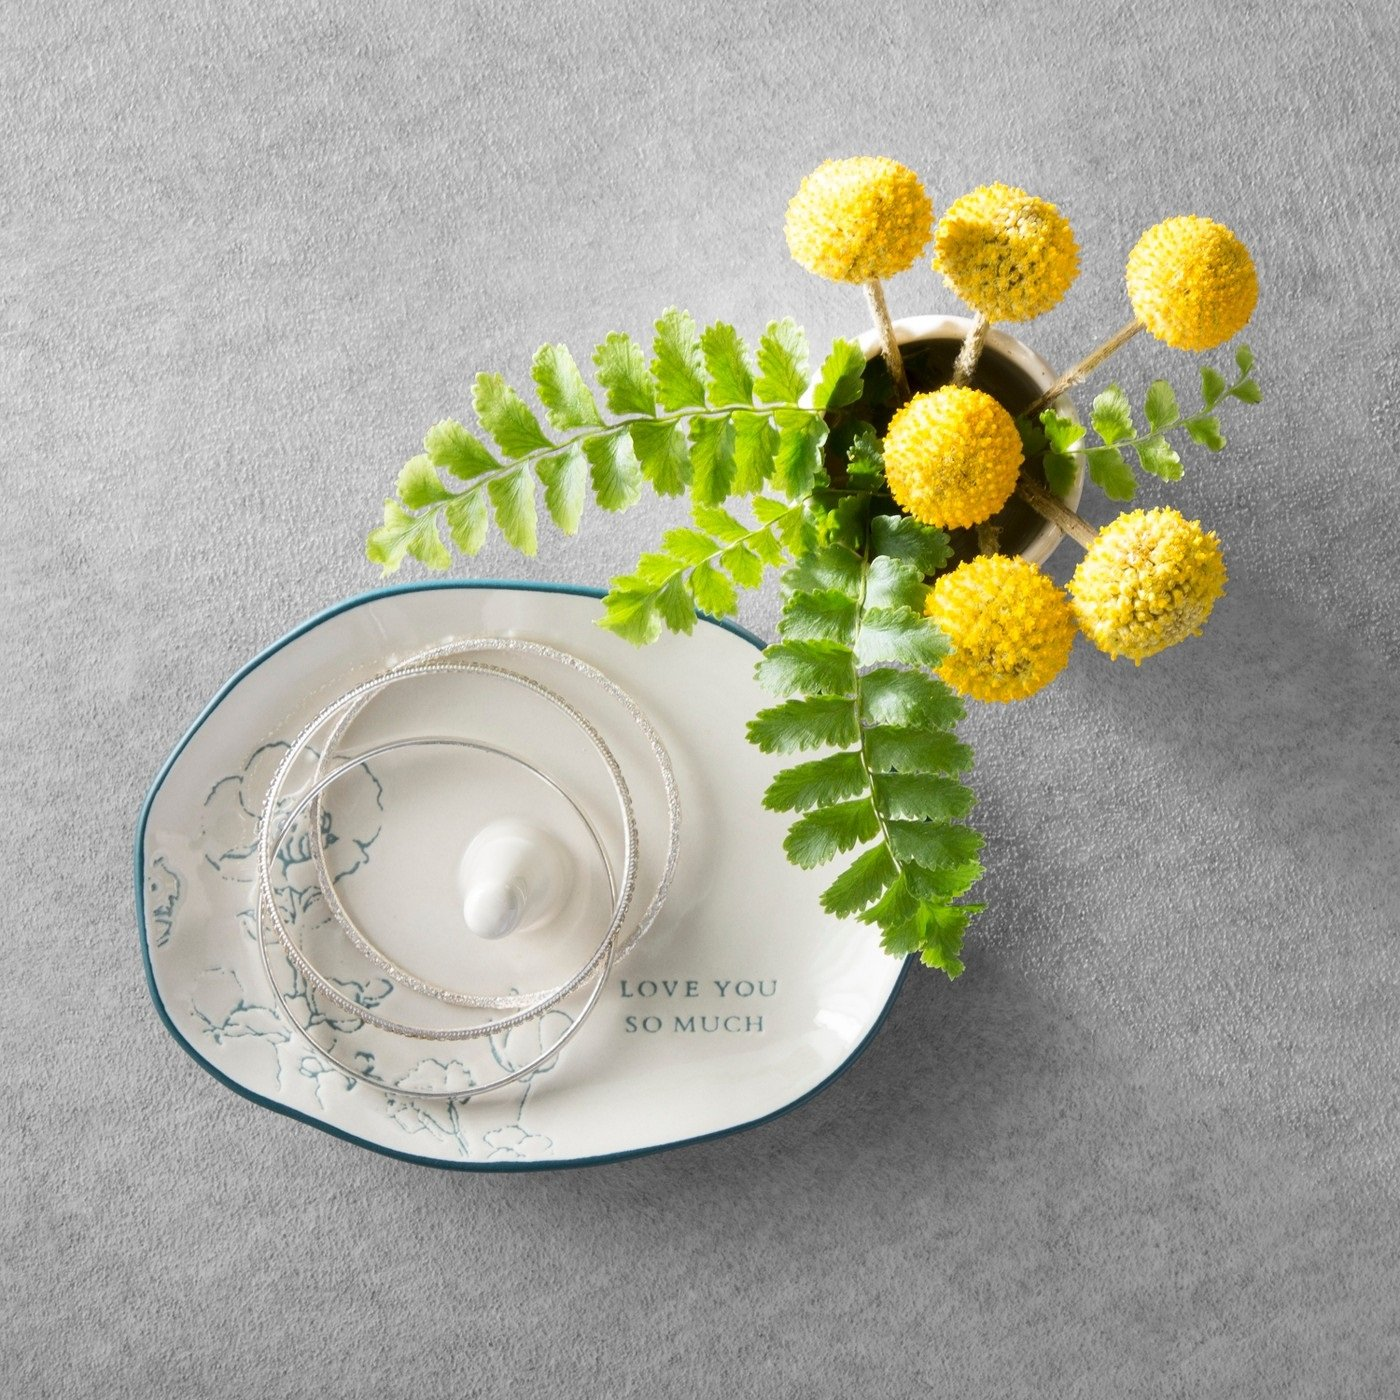 Hearth and Hand Magnolia Ring Tray Stoneware Cream Love Mother Day Collection by Hearth & Hand Magnolia (Image #2)